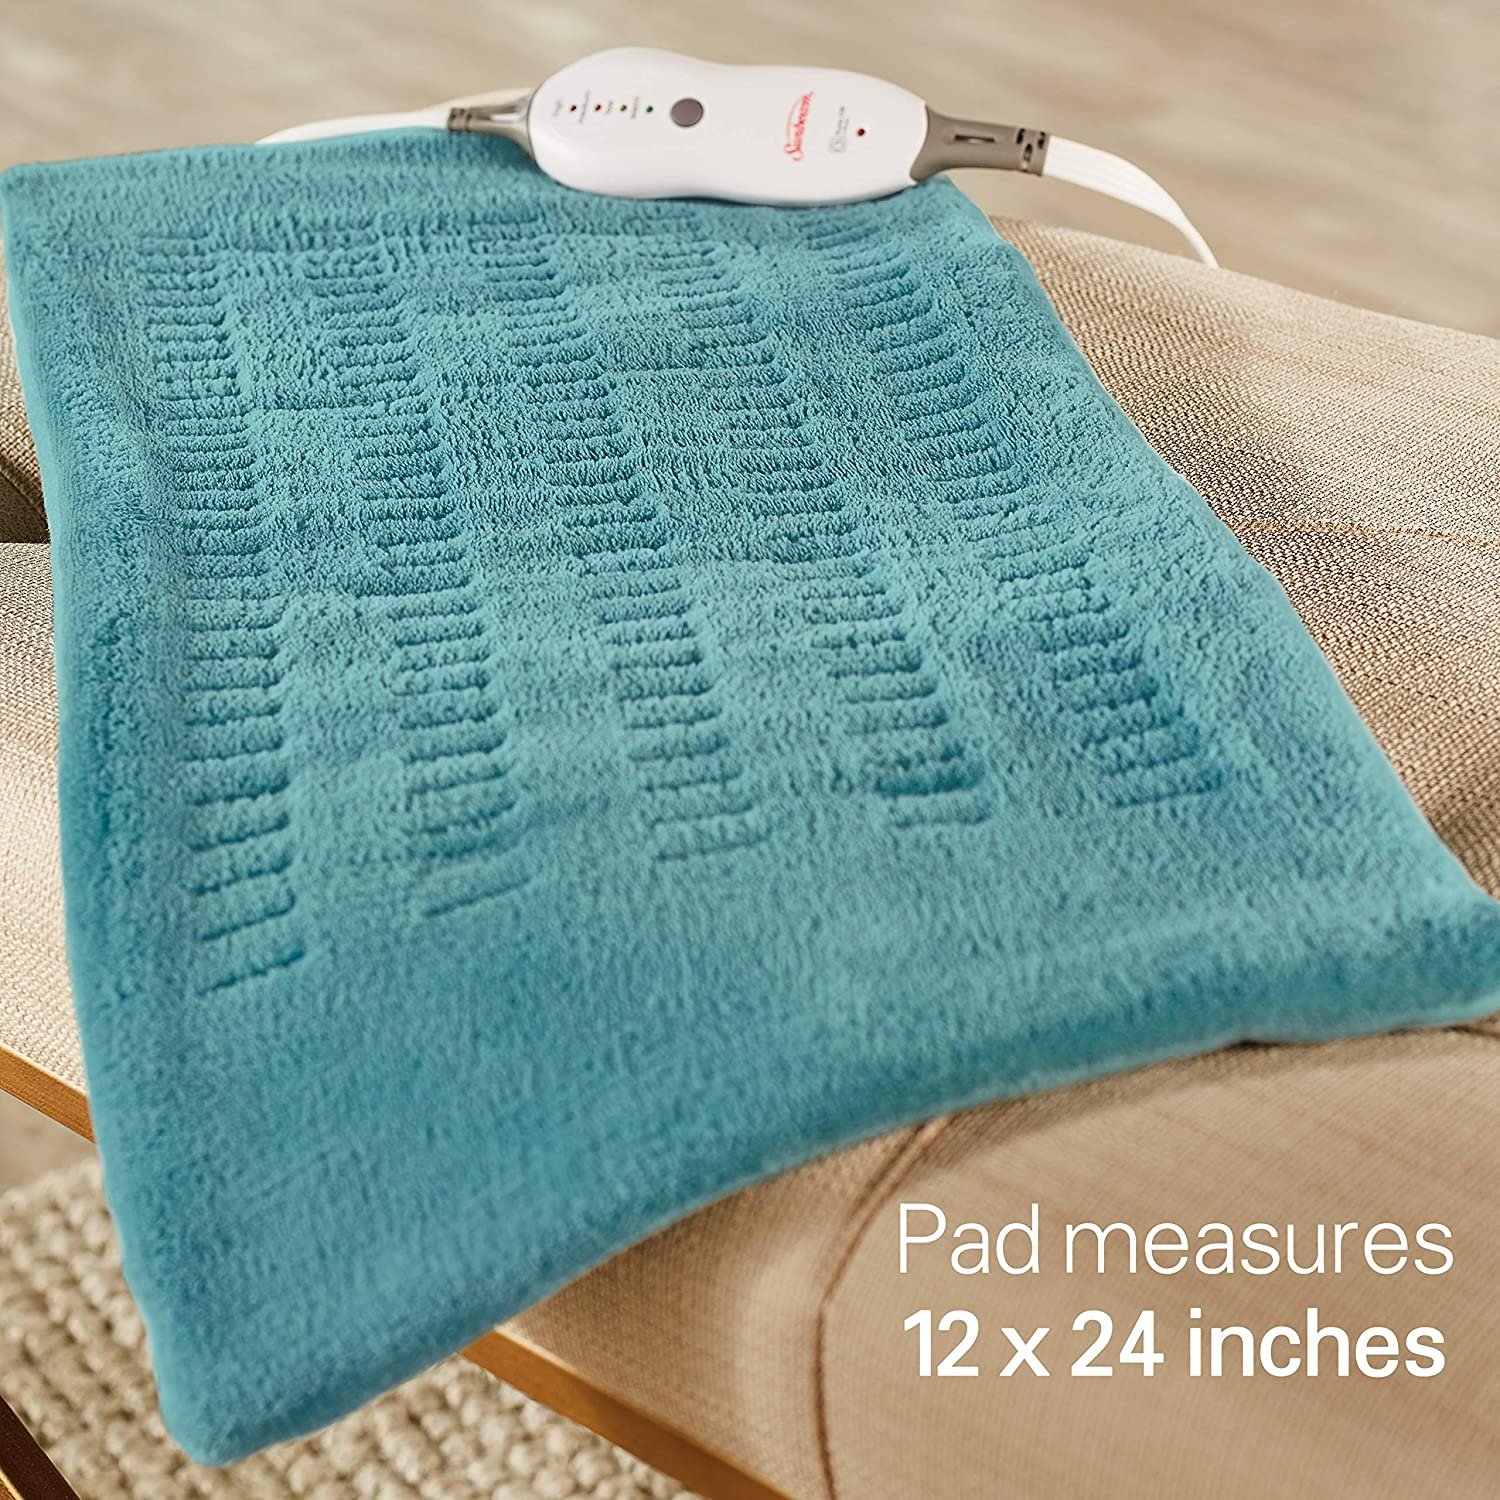 69795a391ce8d Sunbeam Heating Pad for Pain Relief | XL King Size SoftTouch, 4 Heat  Settings with Auto-Off | Teal,...